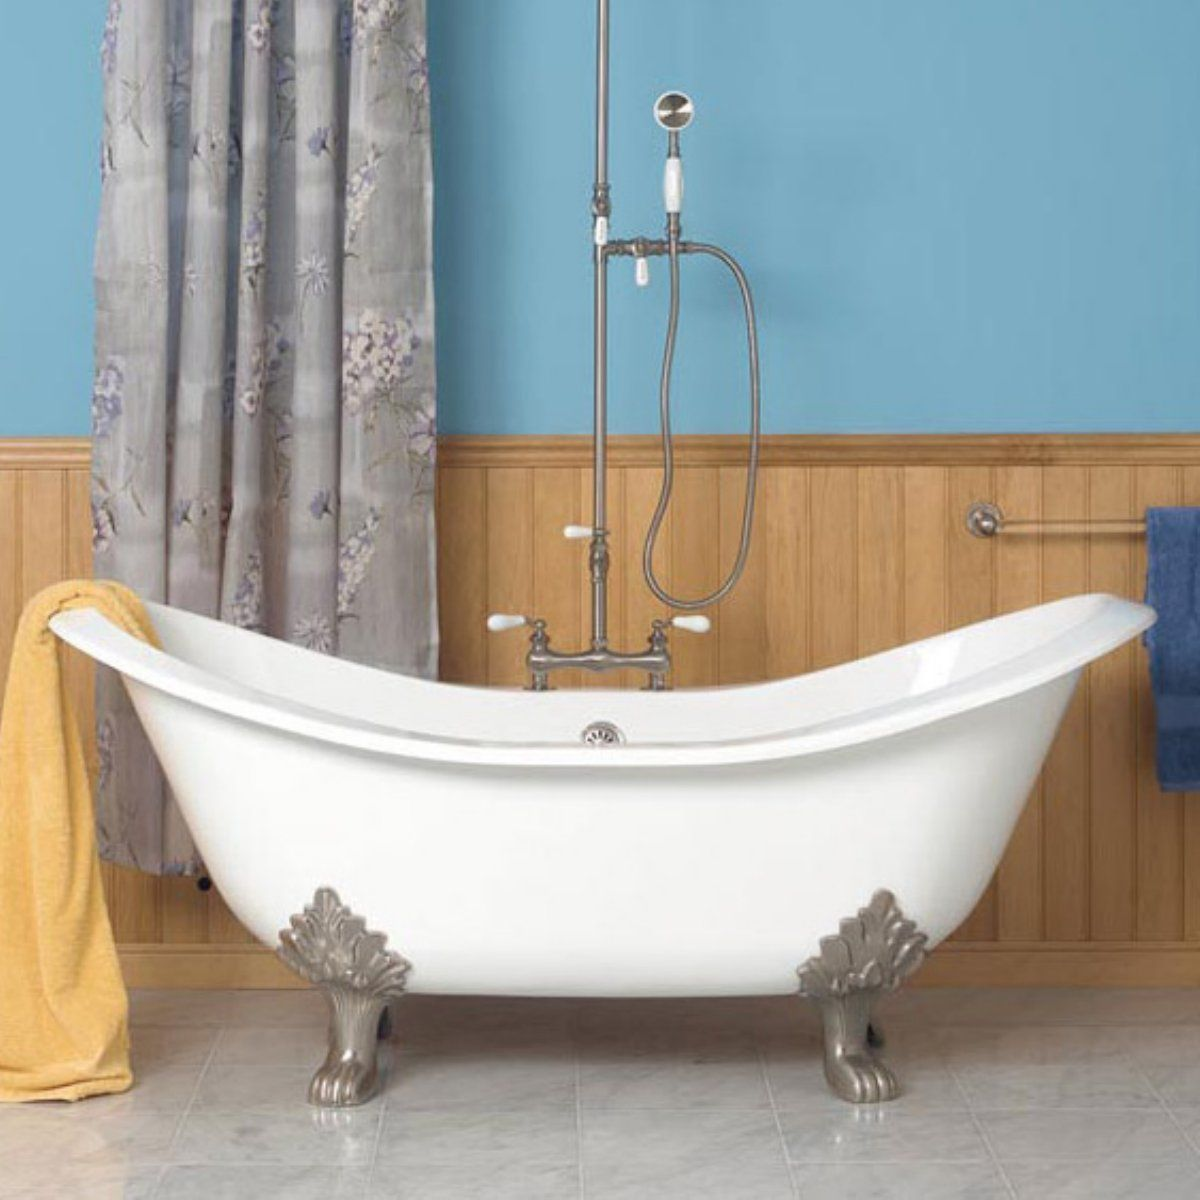 Bathtubs And Showers Clawfoot Tubs with Wood Wall Decoration and ...